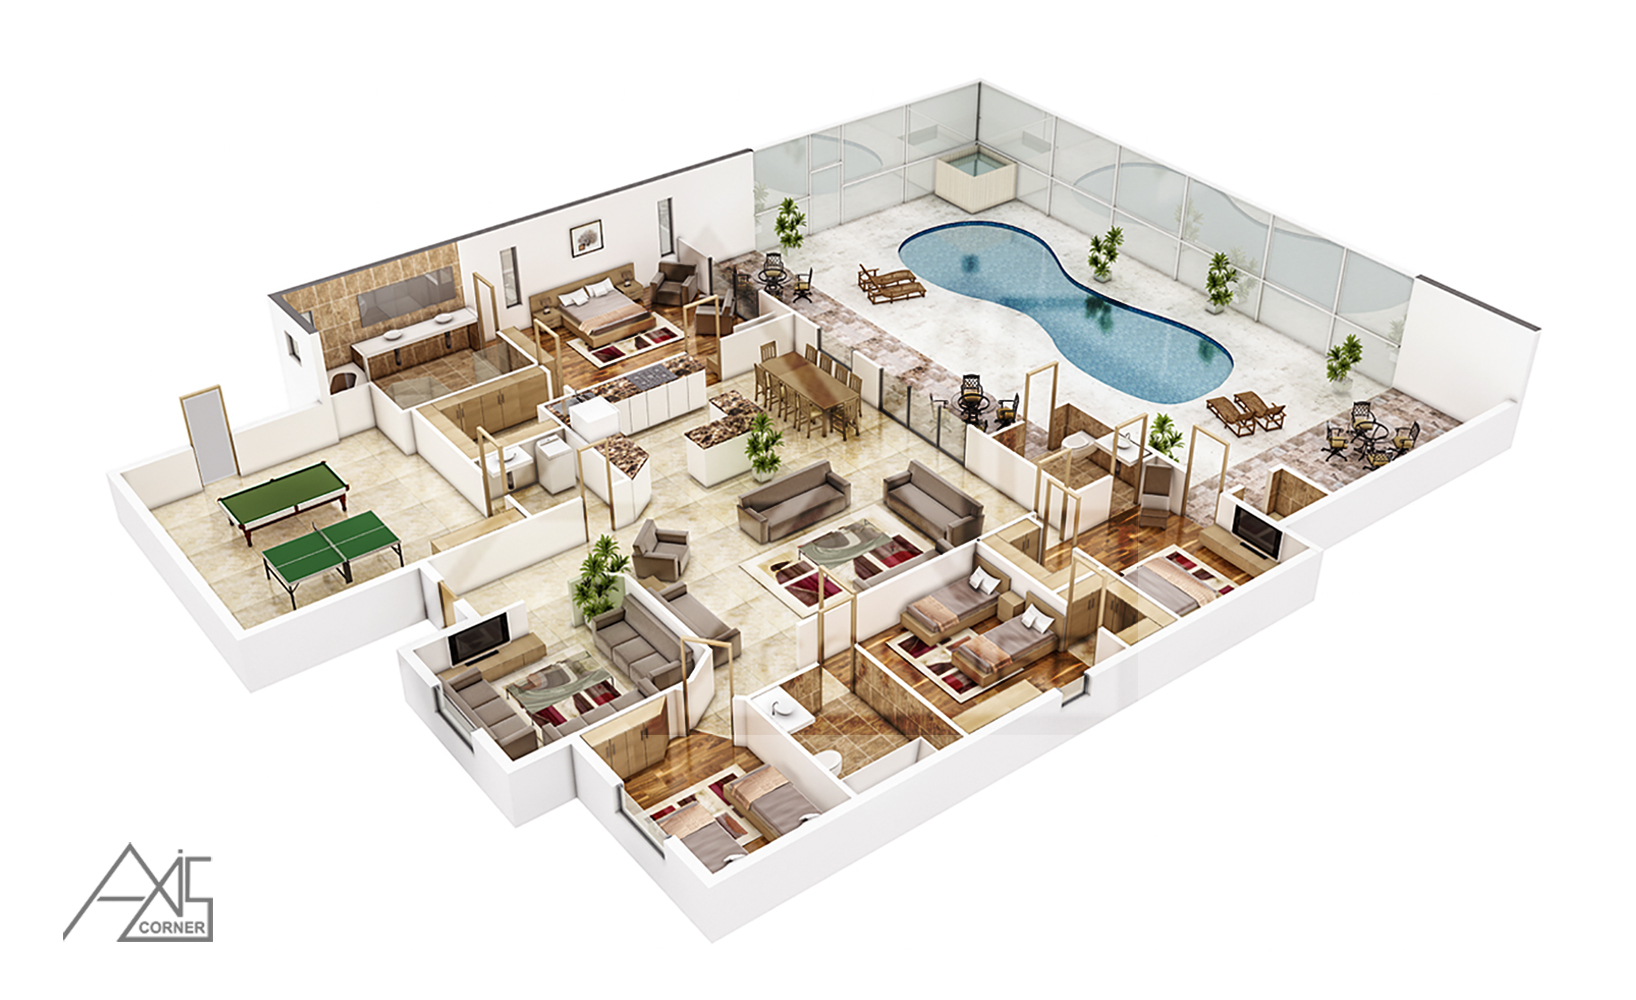 3d architectural floor plans rendering portfolio 3d for 3d floor plans architectural floor plans